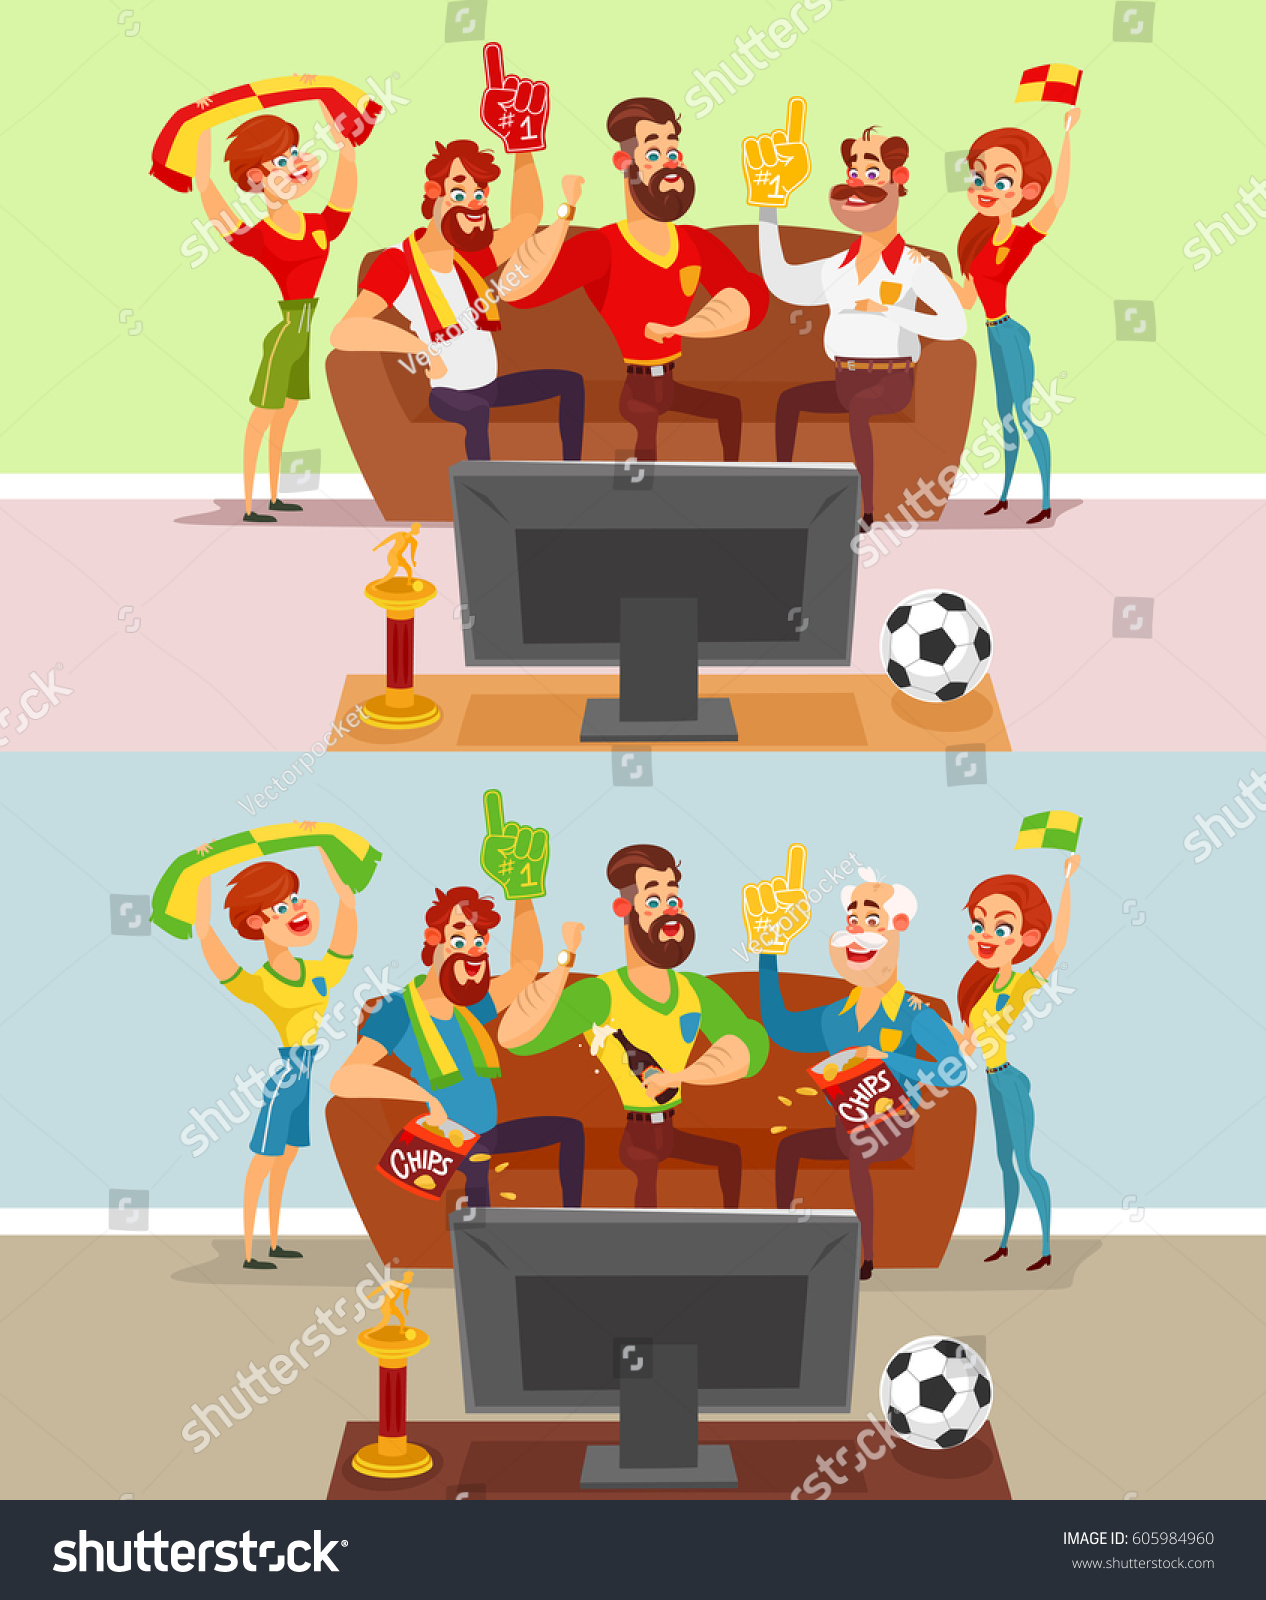 Business team cartoon characters cartoon vector cartoondealer com - Two Vector Cartoon Illustrations Of A Group Of Friends And Family Members Of Football Fans Watching